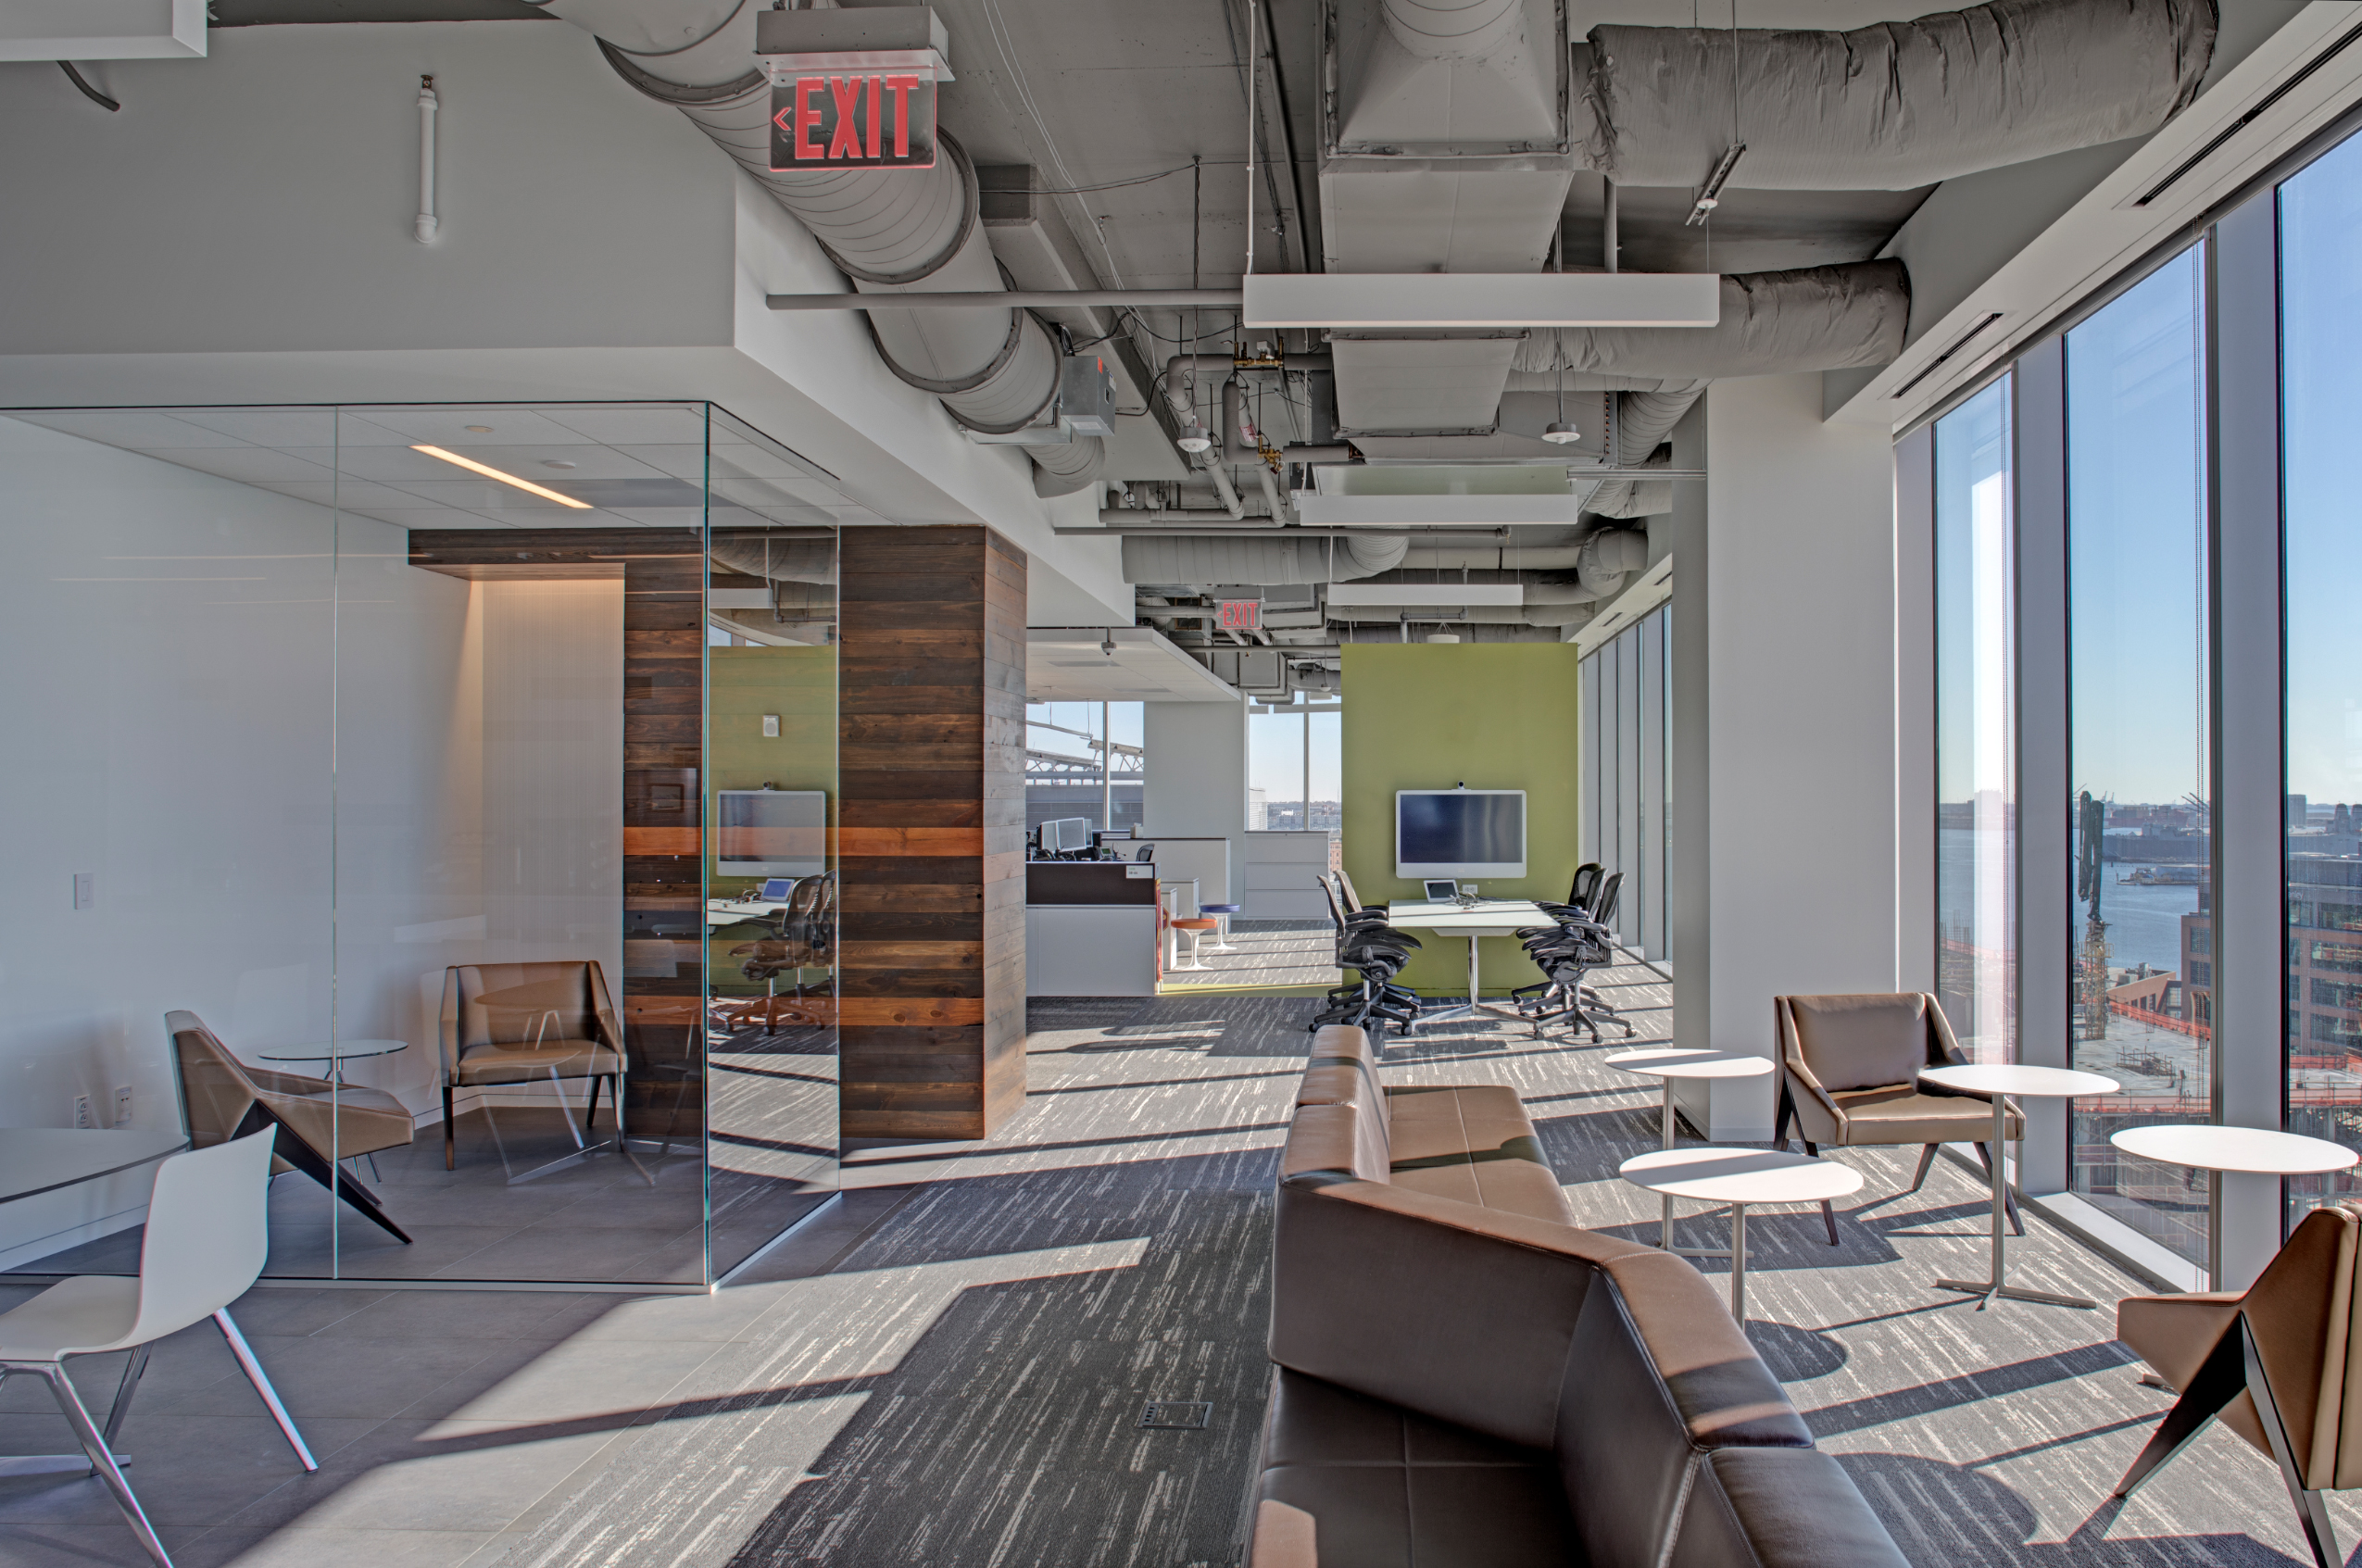 Architects and commercial interior designers can help companies do thorough COVID-19 hazard assessments and give decision-makers workable options for returning to work.